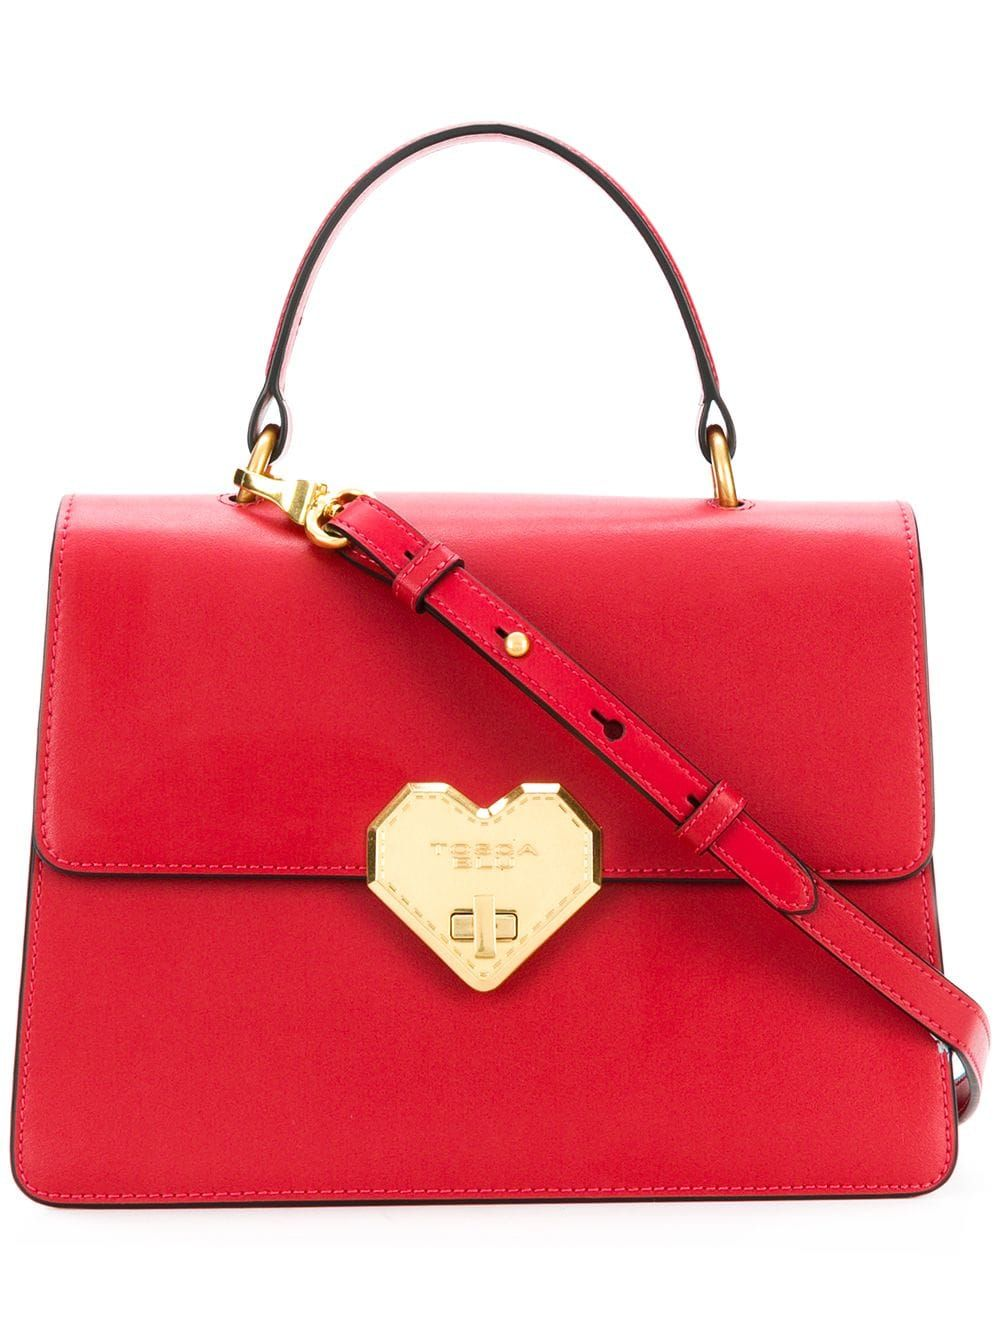 0336e8cd2aa1 TOSCA BLU TOSCA BLU HEART LOCK TOTE - RED.  toscablu  bags  shoulder bags   hand bags  leather  tote